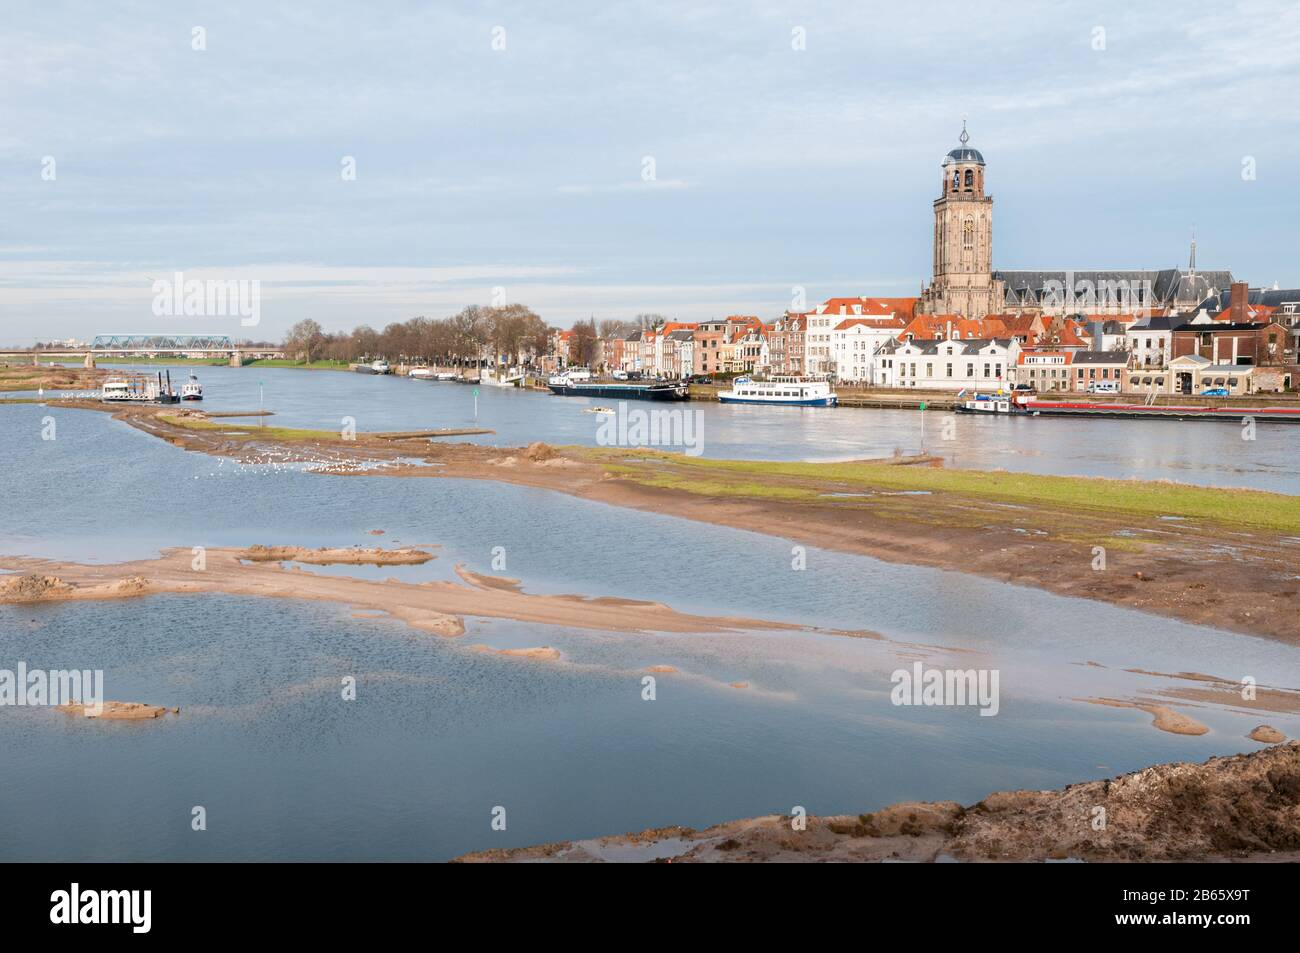 DEVENTER, THE NETHERLANDS - JANUARY 18, 2014: The historic center of Deventer with the Lebuinus Church and the river IJssel in the foreground. Stock Photo